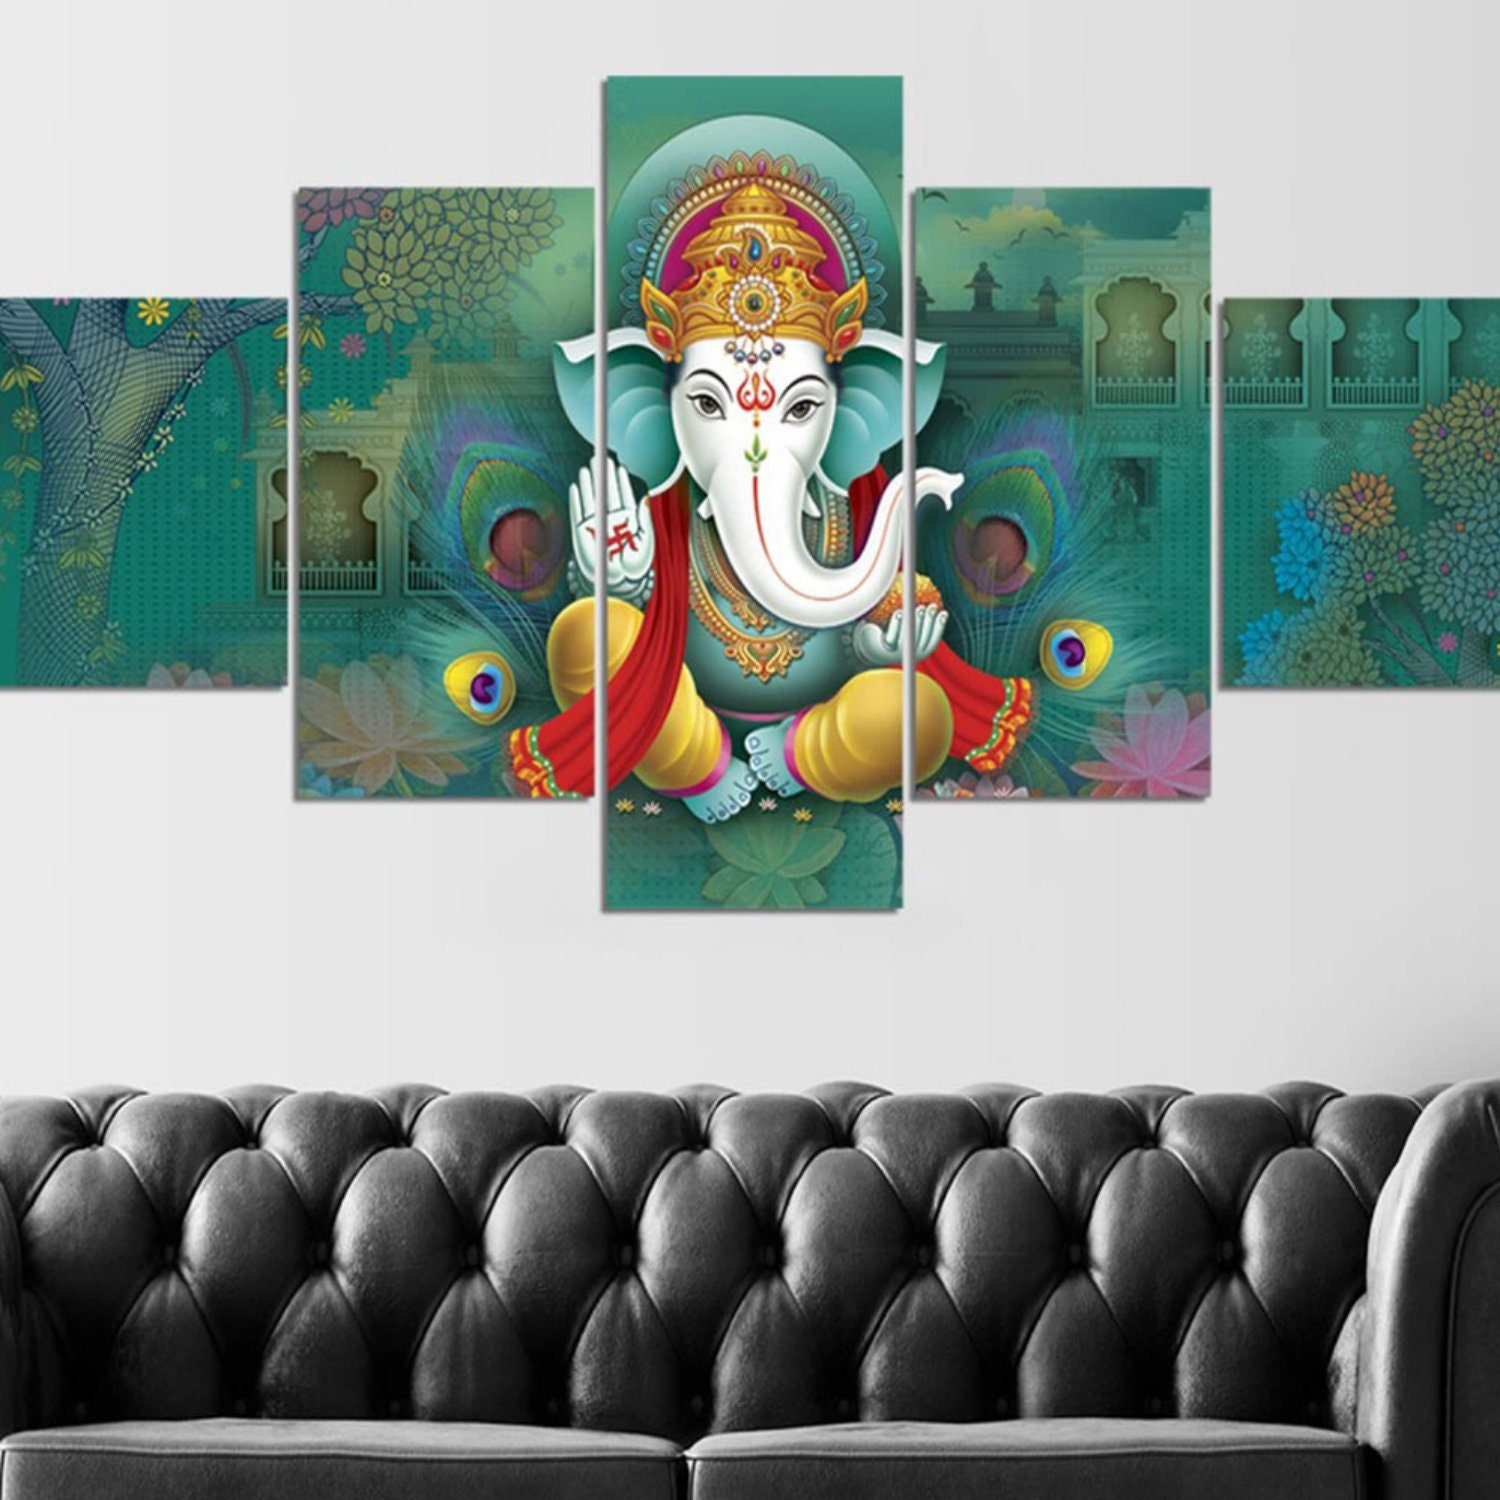 Ganesha wall mural on green background ganesh poster ganesha wall painting ganesha wall decor multi panel canvas art with without frame